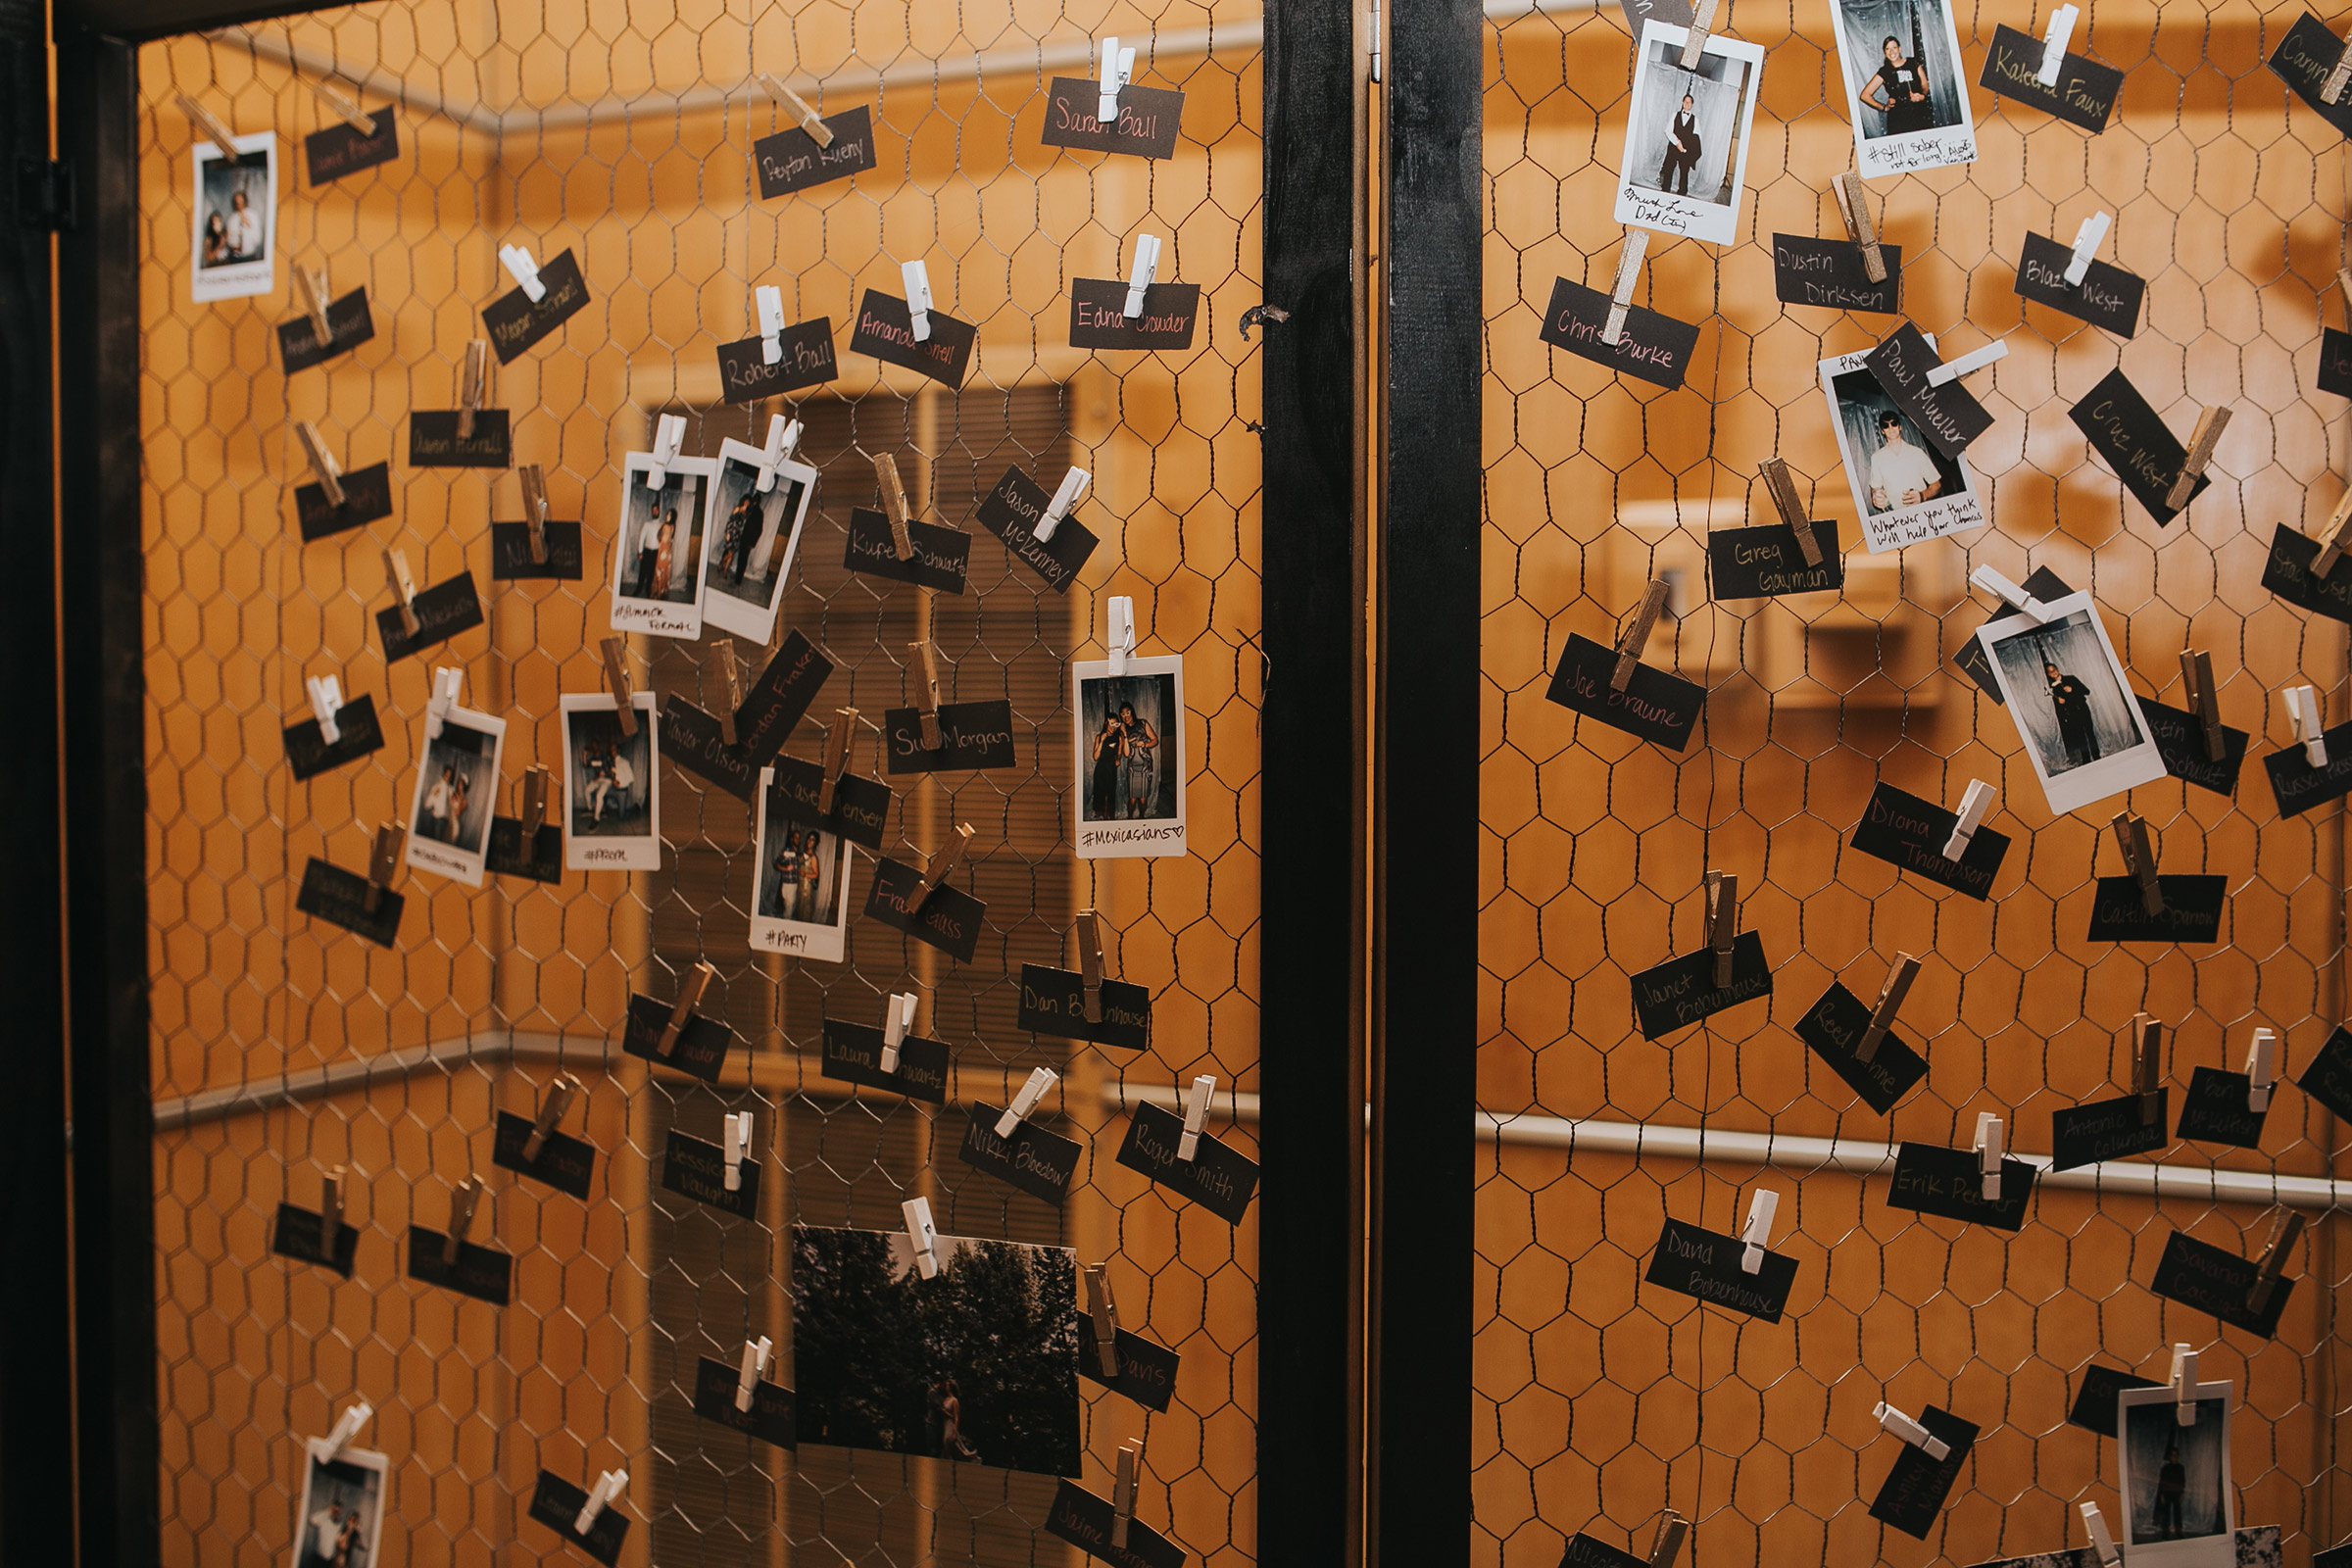 display-of-guests-polaroids-for-wedding-gift-desmoines-iowa-art-center-raelyn-ramey-photography.jpg